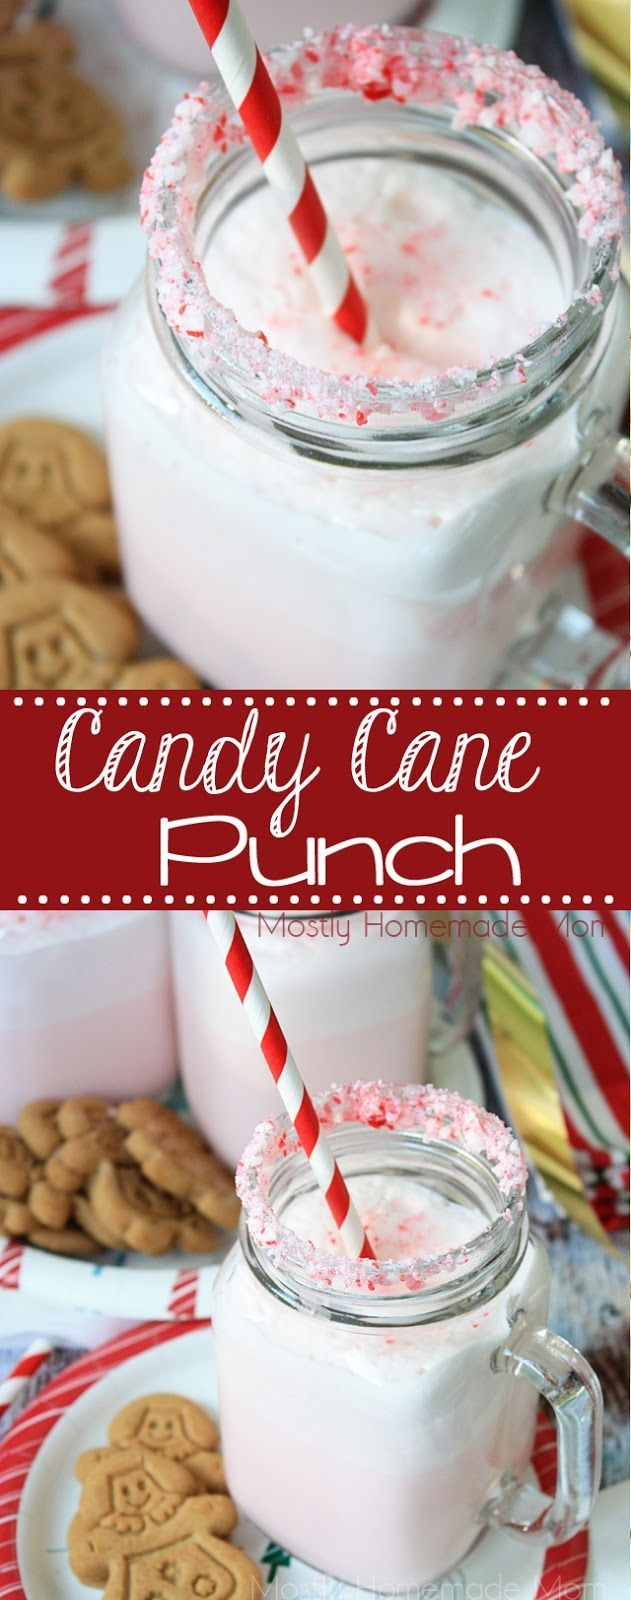 Candy Cane Punch - Peppermint ice cream, milk, fizzy 7UP®, and crushed candy canes make this festive ice cream punch perfect for young and old alike! #ad